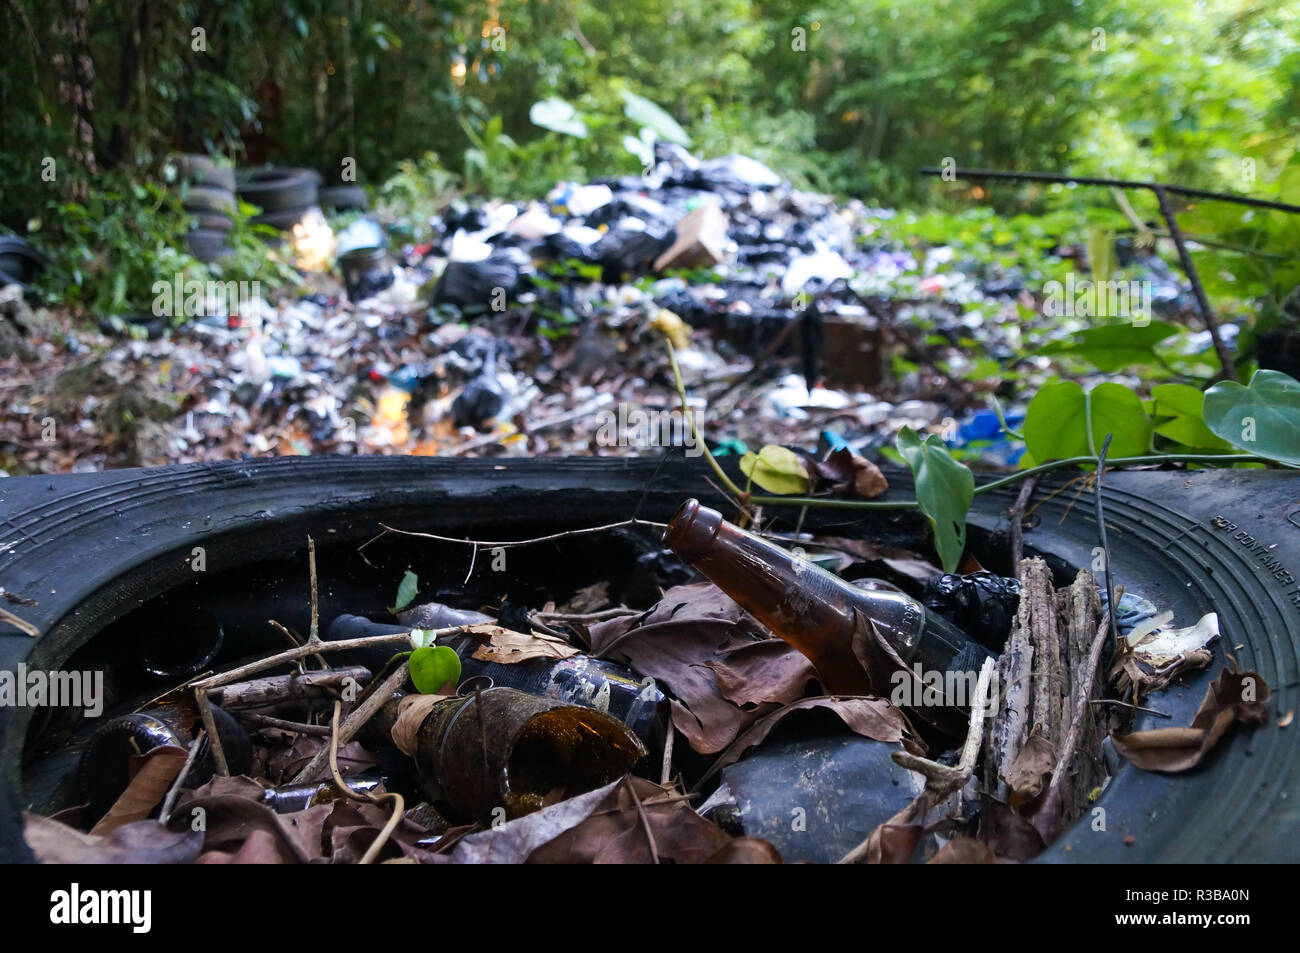 Garbage pile in trash dump or landfill in jungle of Guatemala. Pollution concept. - Stock Image